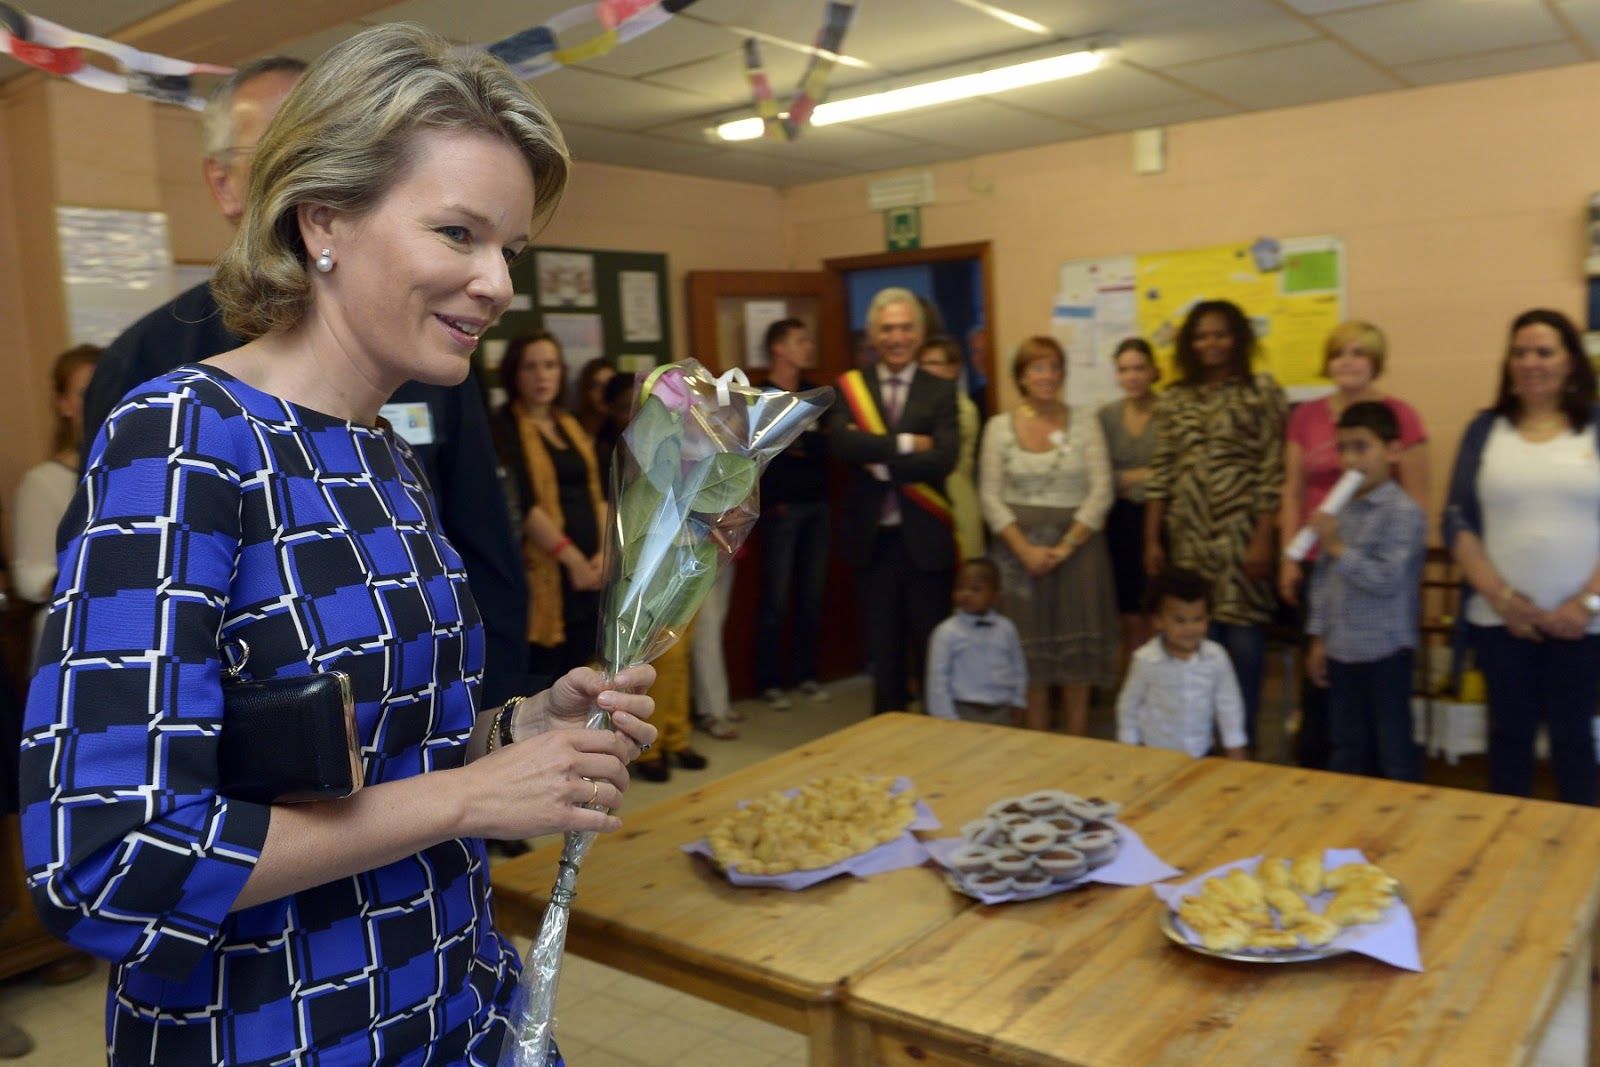 Queen Mathilde also took the time to speak with the people this work is all about, the people in need of the work of these institutions.